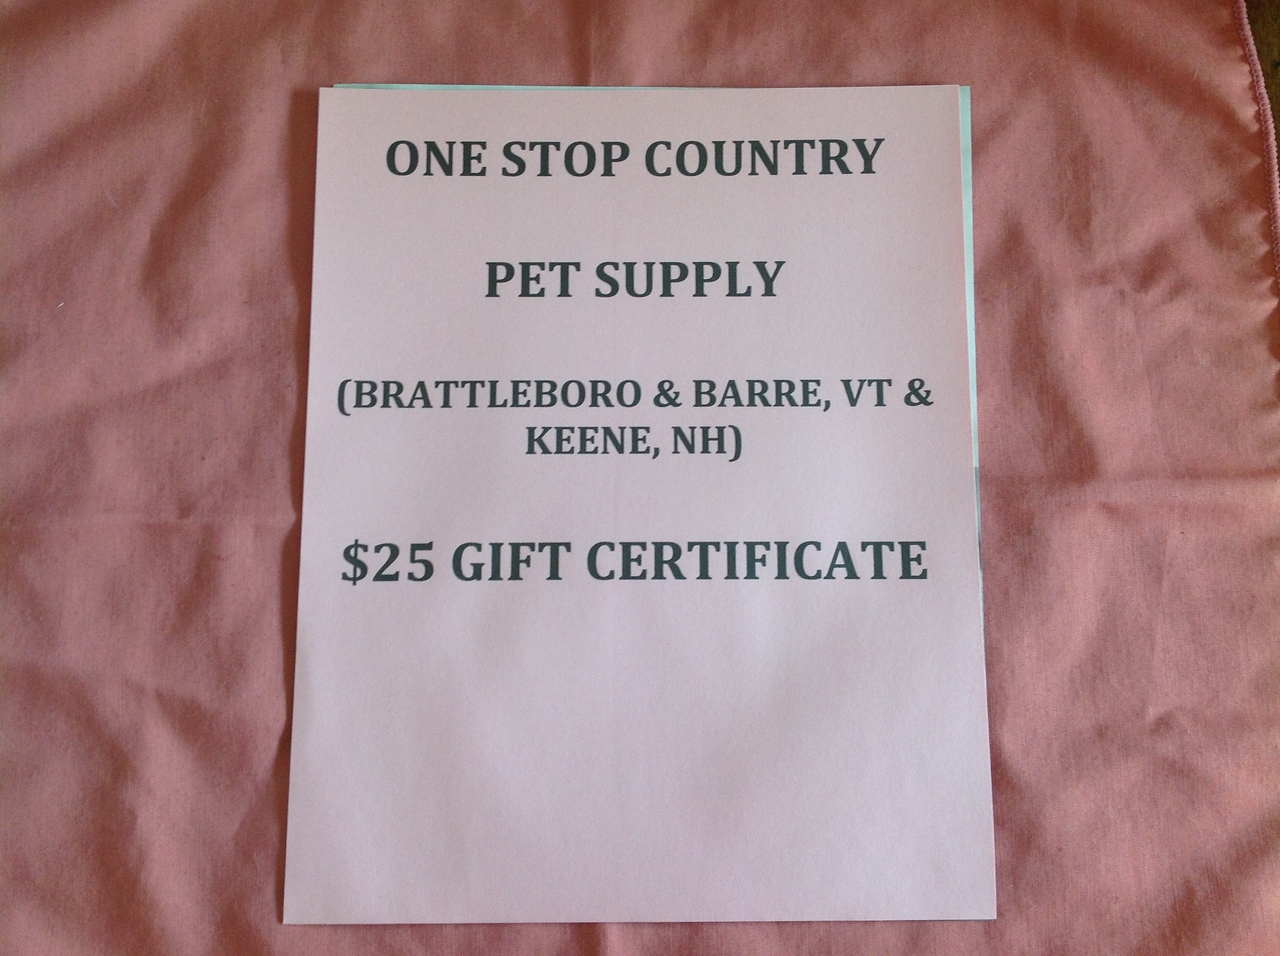 $25 Gift certificate for One Stop Country Pet Supply. Stores located in Brattleboro & Barre, VT and Keene, NH<br /> <br /> Starting bid $10